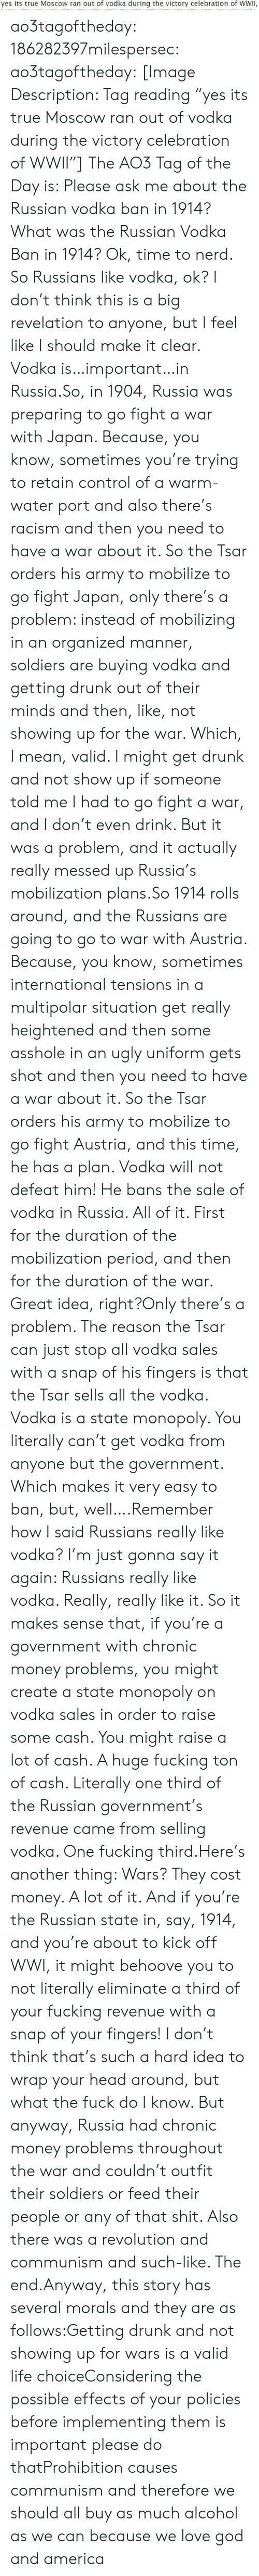 "And Also: yes its true Moscow ran out of vodka during the victory celebration of WWII, ao3tagoftheday:  186282397milespersec:  ao3tagoftheday:  [Image Description: Tag reading ""yes its true Moscow ran out of vodka during the victory celebration of WWII""]  The AO3 Tag of the Day is: Please ask me about the Russian vodka ban in 1914?   What was the Russian Vodka Ban in 1914?  Ok, time to nerd. So Russians like vodka, ok? I don't think this is a big revelation to anyone, but I feel like I should make it clear. Vodka is…important…in Russia.So, in 1904, Russia was preparing to go fight a war with Japan. Because, you know, sometimes you're trying to retain control of a warm-water port and also there's racism and then you need to have a war about it. So the Tsar orders his army to mobilize to go fight Japan, only there's a problem: instead of mobilizing in an organized manner, soldiers are buying vodka and getting drunk out of their minds and then, like, not showing up for the war. Which, I mean, valid. I might get drunk and not show up if someone told me I had to go fight a war, and I don't even drink. But it was a problem, and it actually really messed up Russia's mobilization plans.So 1914 rolls around, and the Russians are going to go to war with Austria. Because, you know, sometimes international tensions in a multipolar situation get really heightened and then some asshole in an ugly uniform gets shot and then you need to have a war about it. So the Tsar orders his army to mobilize to go fight Austria, and this time, he has a plan. Vodka will not defeat him! He bans the sale of vodka in Russia. All of it. First for the duration of the mobilization period, and then for the duration of the war. Great idea, right?Only there's a problem. The reason the Tsar can just stop all vodka sales with a snap of his fingers is that the Tsar sells all the vodka. Vodka is a state monopoly. You literally can't get vodka from anyone but the government. Which makes it very easy to ban, but, well….Remember how I said Russians really like vodka? I'm just gonna say it again: Russians really like vodka. Really, really like it. So it makes sense that, if you're a government with chronic money problems, you might create a state monopoly on vodka sales in order to raise some cash. You might raise a lot of cash. A huge fucking ton of cash. Literally one third of the Russian government's revenue came from selling vodka. One fucking third.Here's another thing: Wars? They cost money. A lot of it. And if you're the Russian state in, say, 1914, and you're about to kick off WWI, it might behoove you to not literally eliminate a third of your fucking revenue with a snap of your fingers! I don't think that's such a hard idea to wrap your head around, but what the fuck do I know. But anyway, Russia had chronic money problems throughout the war and couldn't outfit their soldiers or feed their people or any of that shit. Also there was a revolution and communism and such-like. The end.Anyway, this story has several morals and they are as follows:Getting drunk and not showing up for wars is a valid life choiceConsidering the possible effects of your policies before implementing them is important please do thatProhibition causes communism and therefore we should all buy as much alcohol as we can because we love god and america"